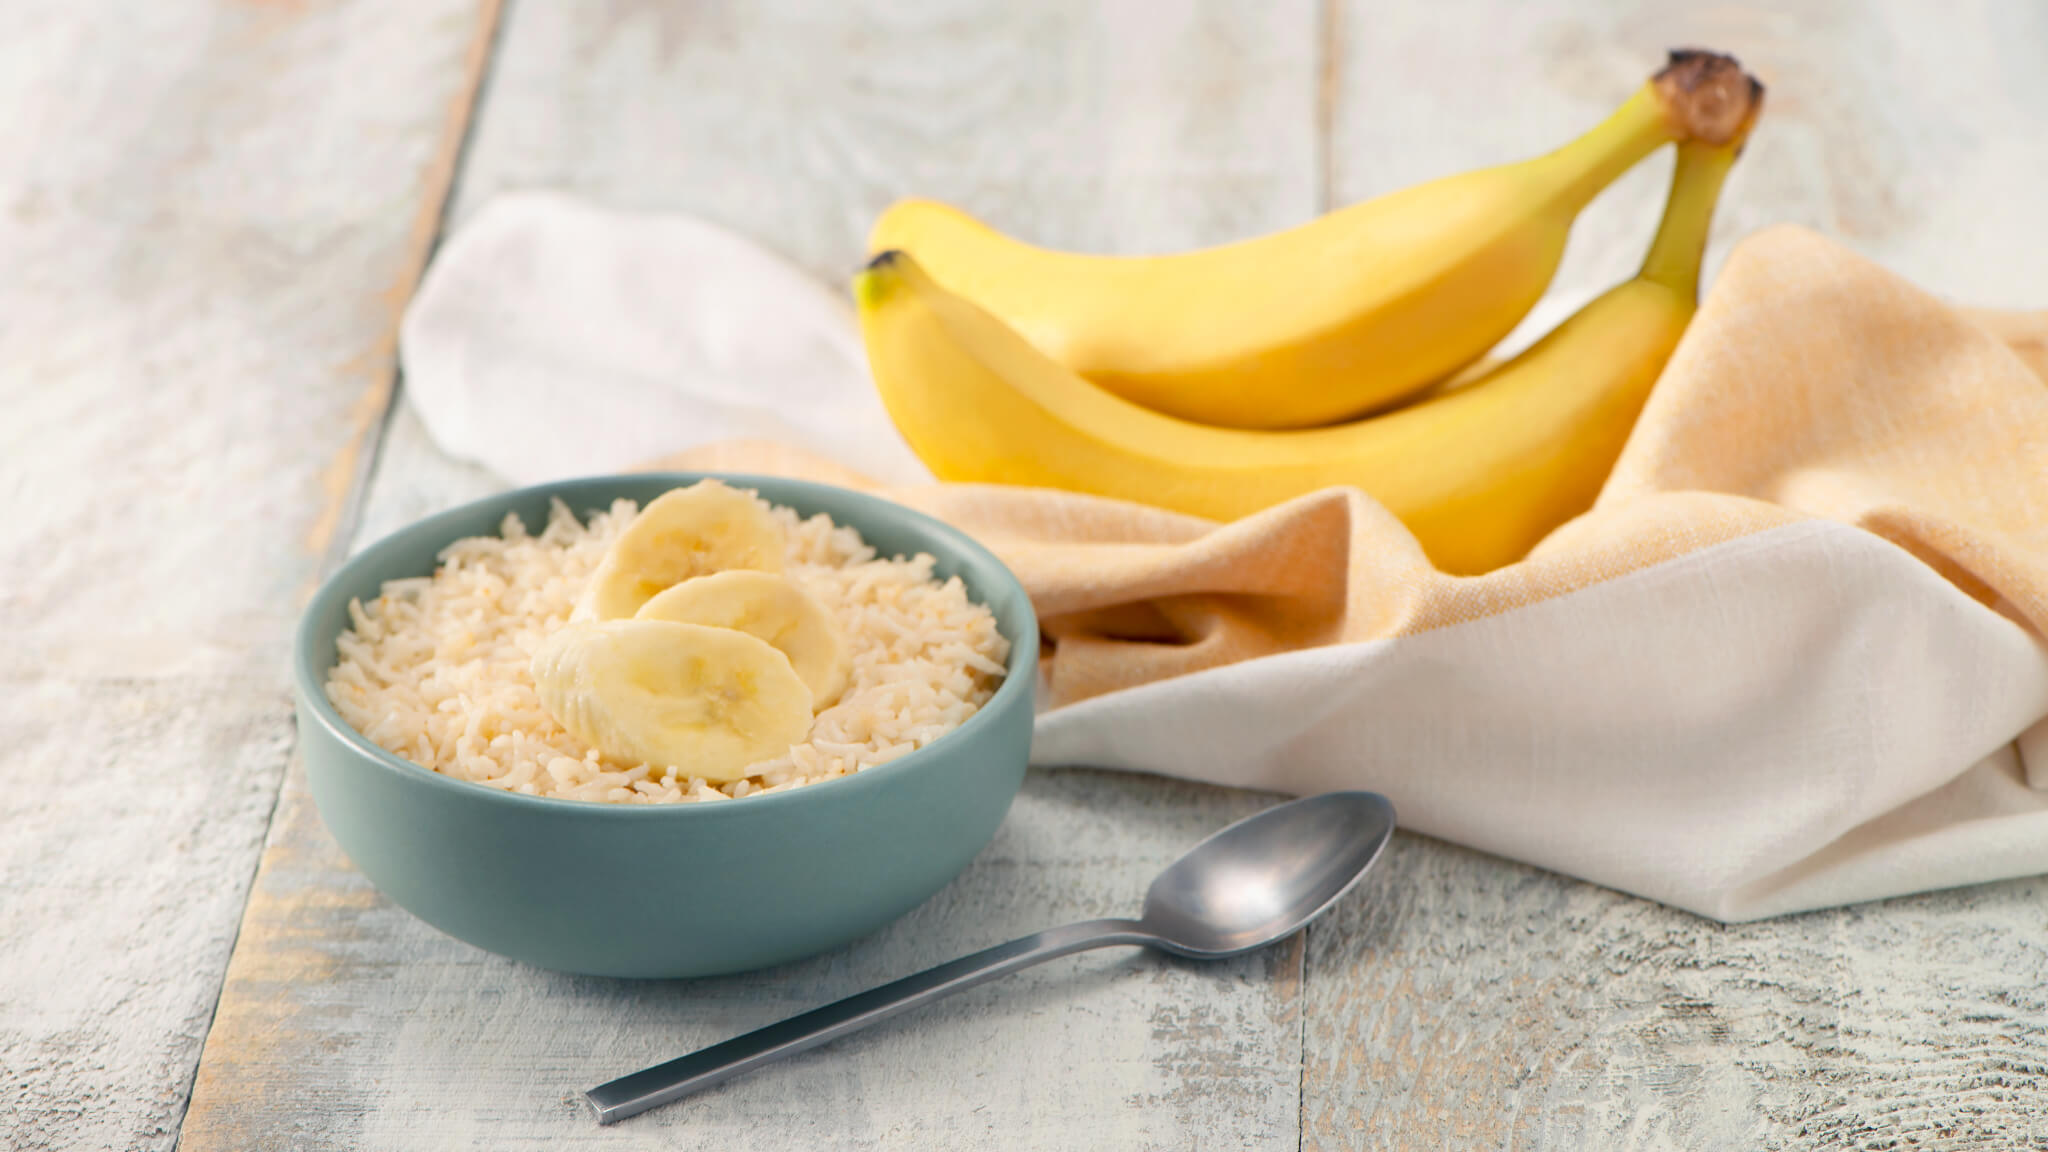 Breakfast Basmati Rice with Bananas